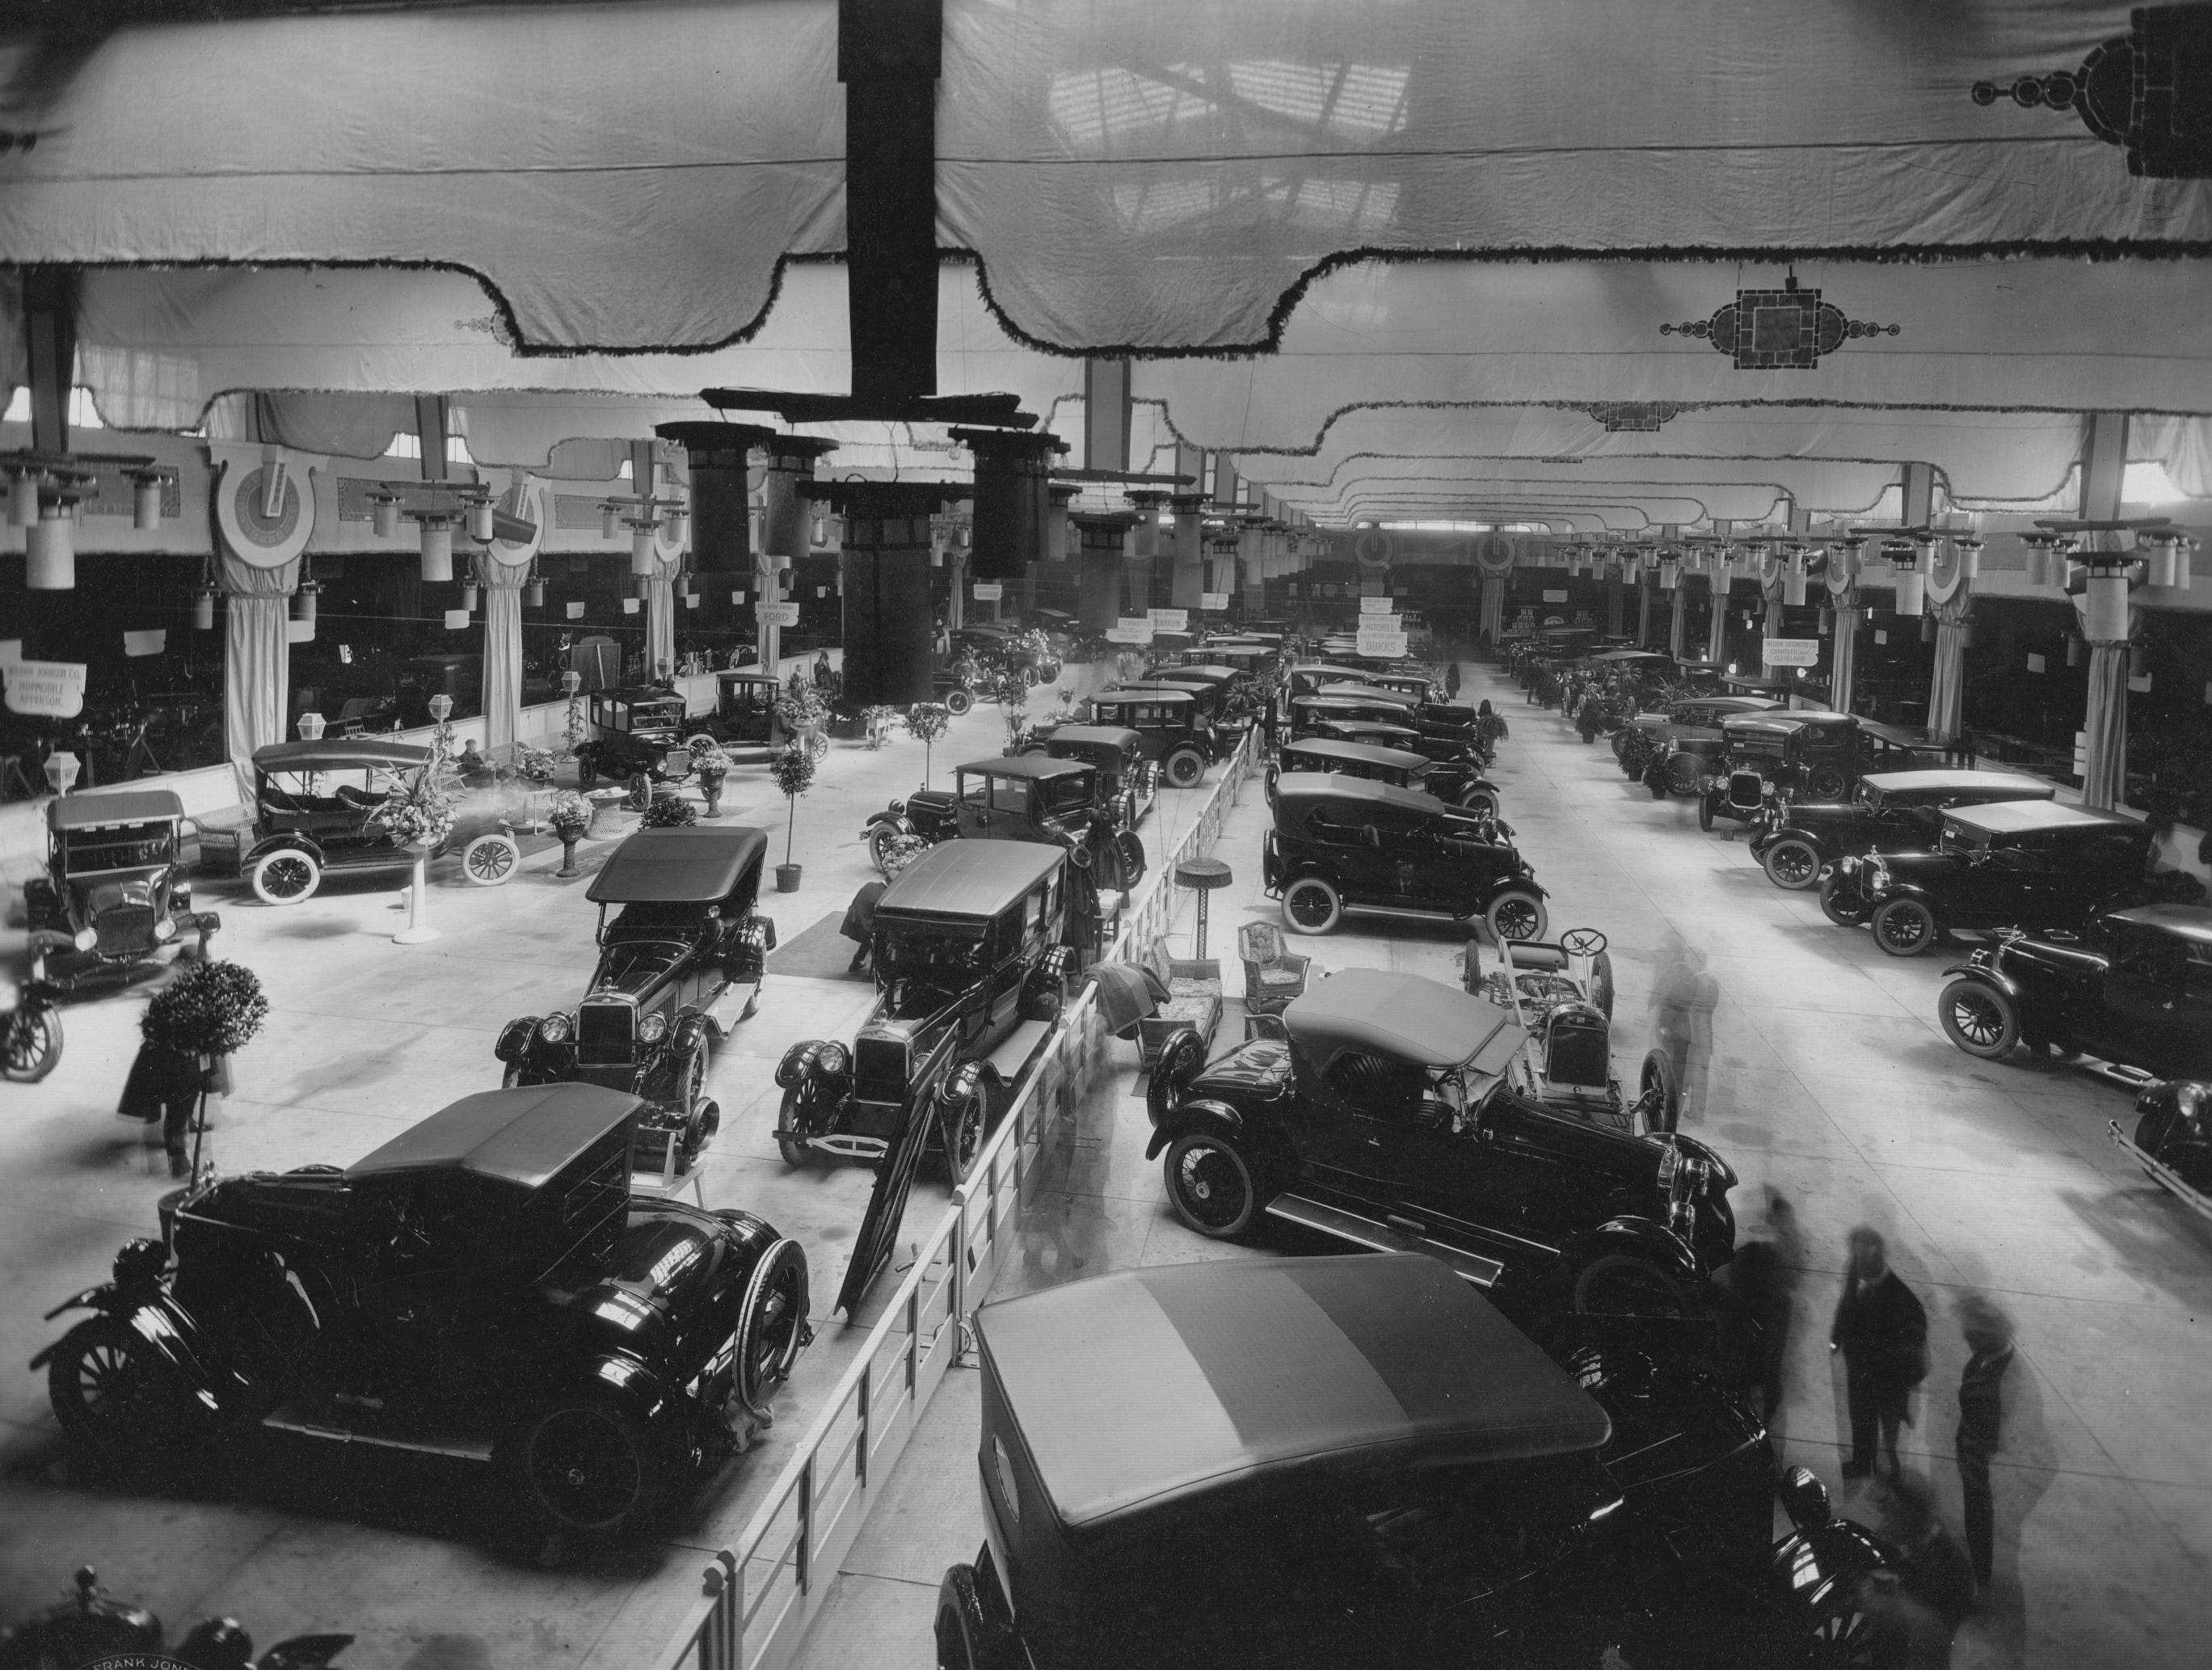 Indianapolis Auto Show, 1922.  Cars on display include the Hupmobile, Apperson, Cadillac, Oakland, Franklin, Weldom Automobile Company, Mitchell, and Buick.